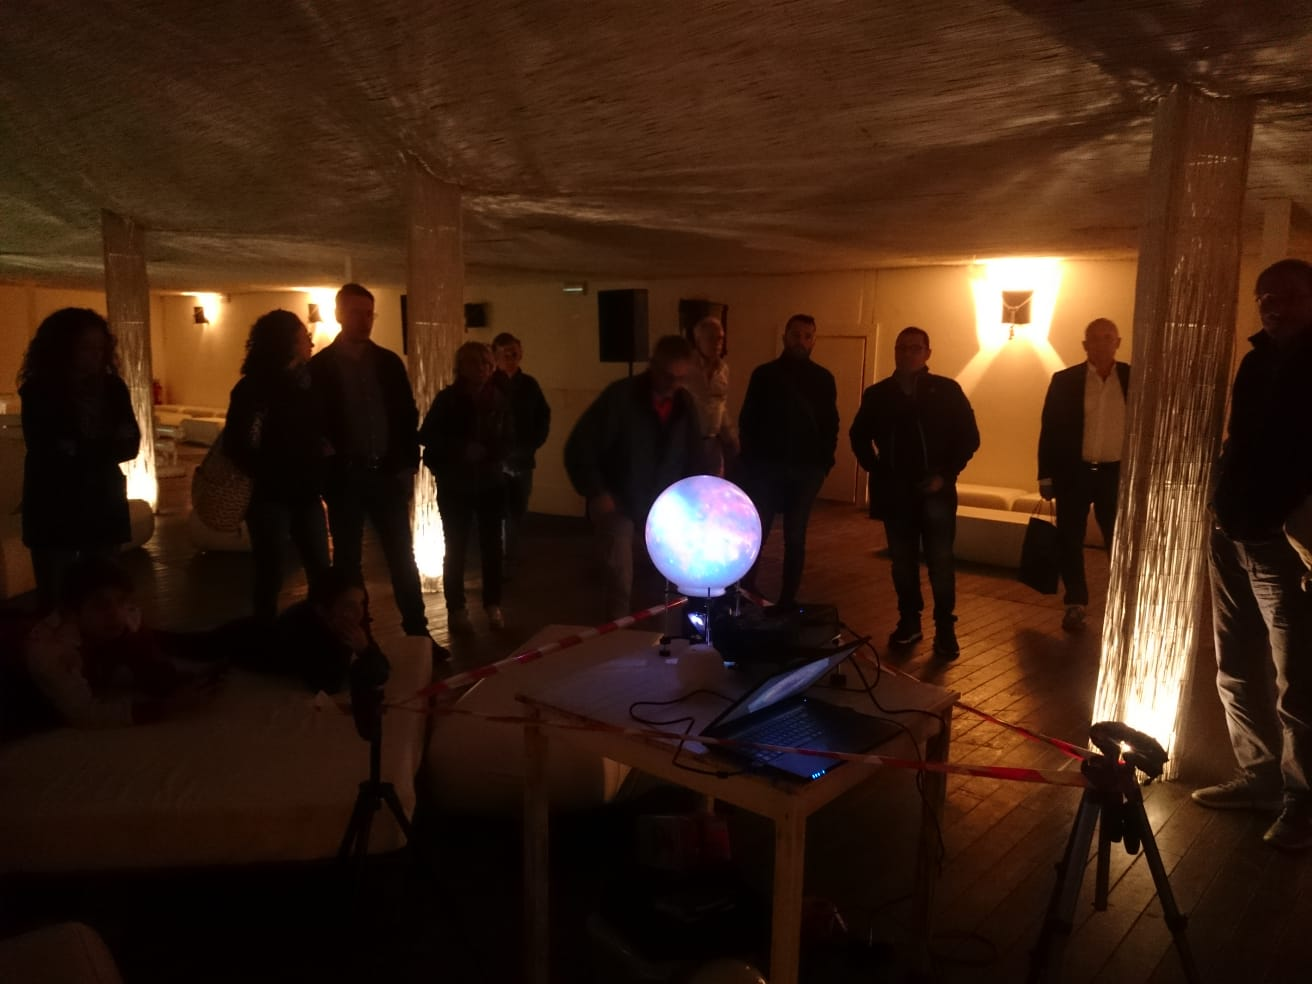 InOMN 2018 di AstronomiAmo al Gilda on the Beach. Il momento di Planets in a Room